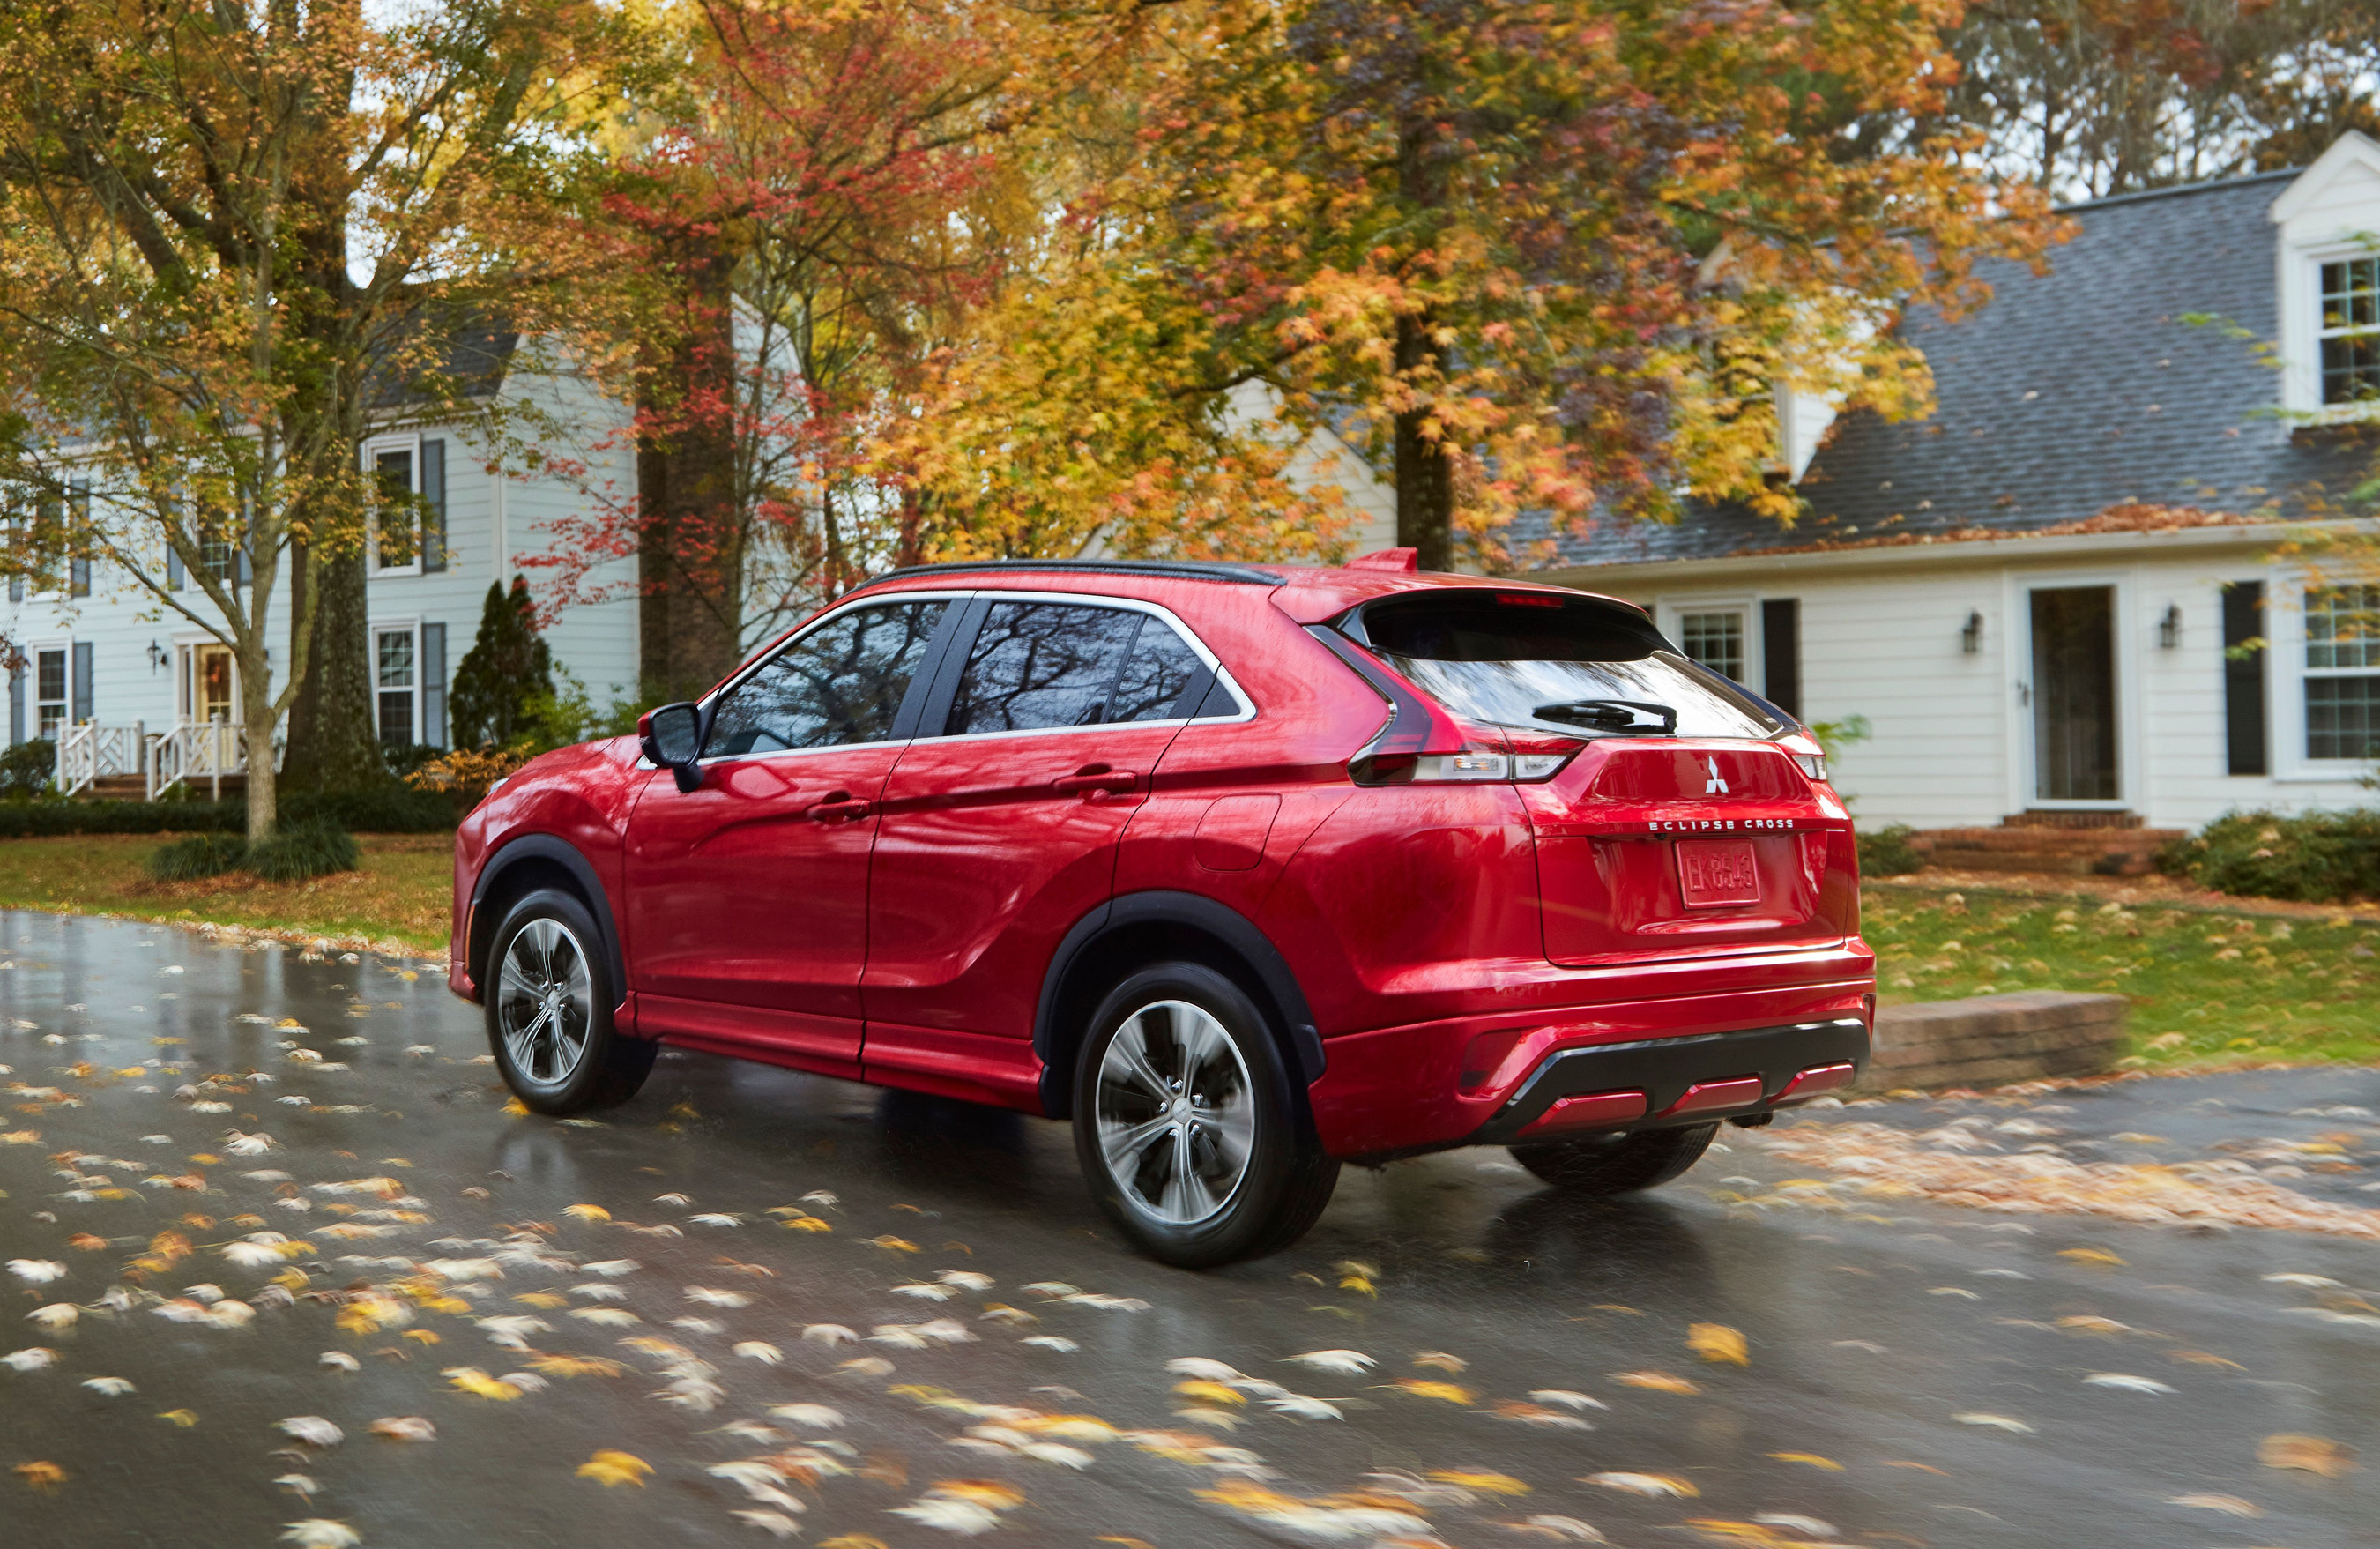 myQ® Connected Garage is now available in the 2022 Mitsubishi Eclipse Cross and in select 2018 and newer Mitsubishi Eclipse Cross Vehicles.